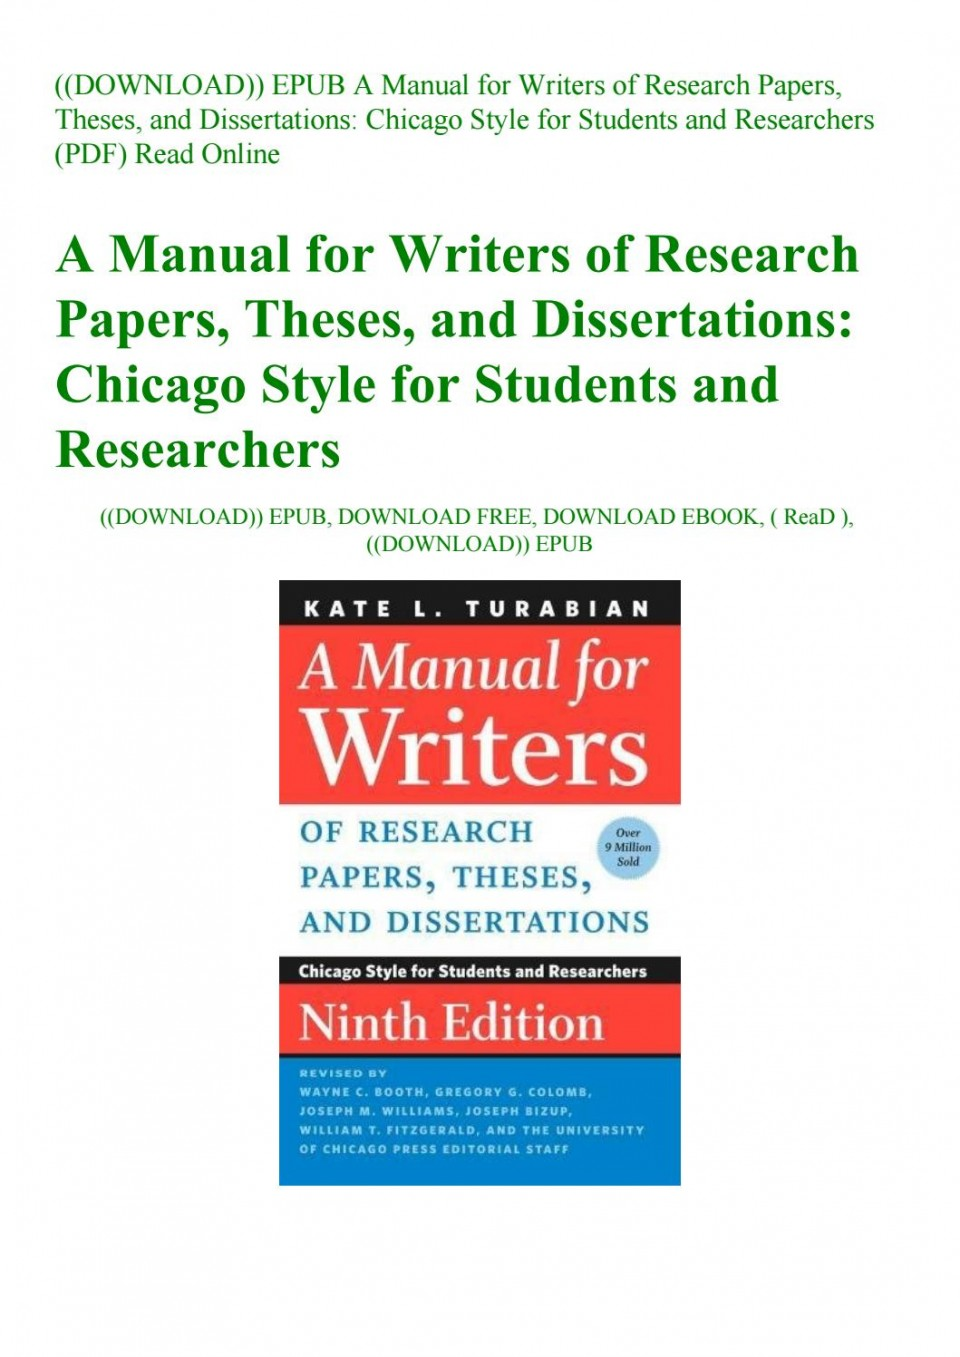 026 Manual For Writers Of Research Papers Theses And Dissertations Turabian Paper Page 1 Amazing A Pdf 960